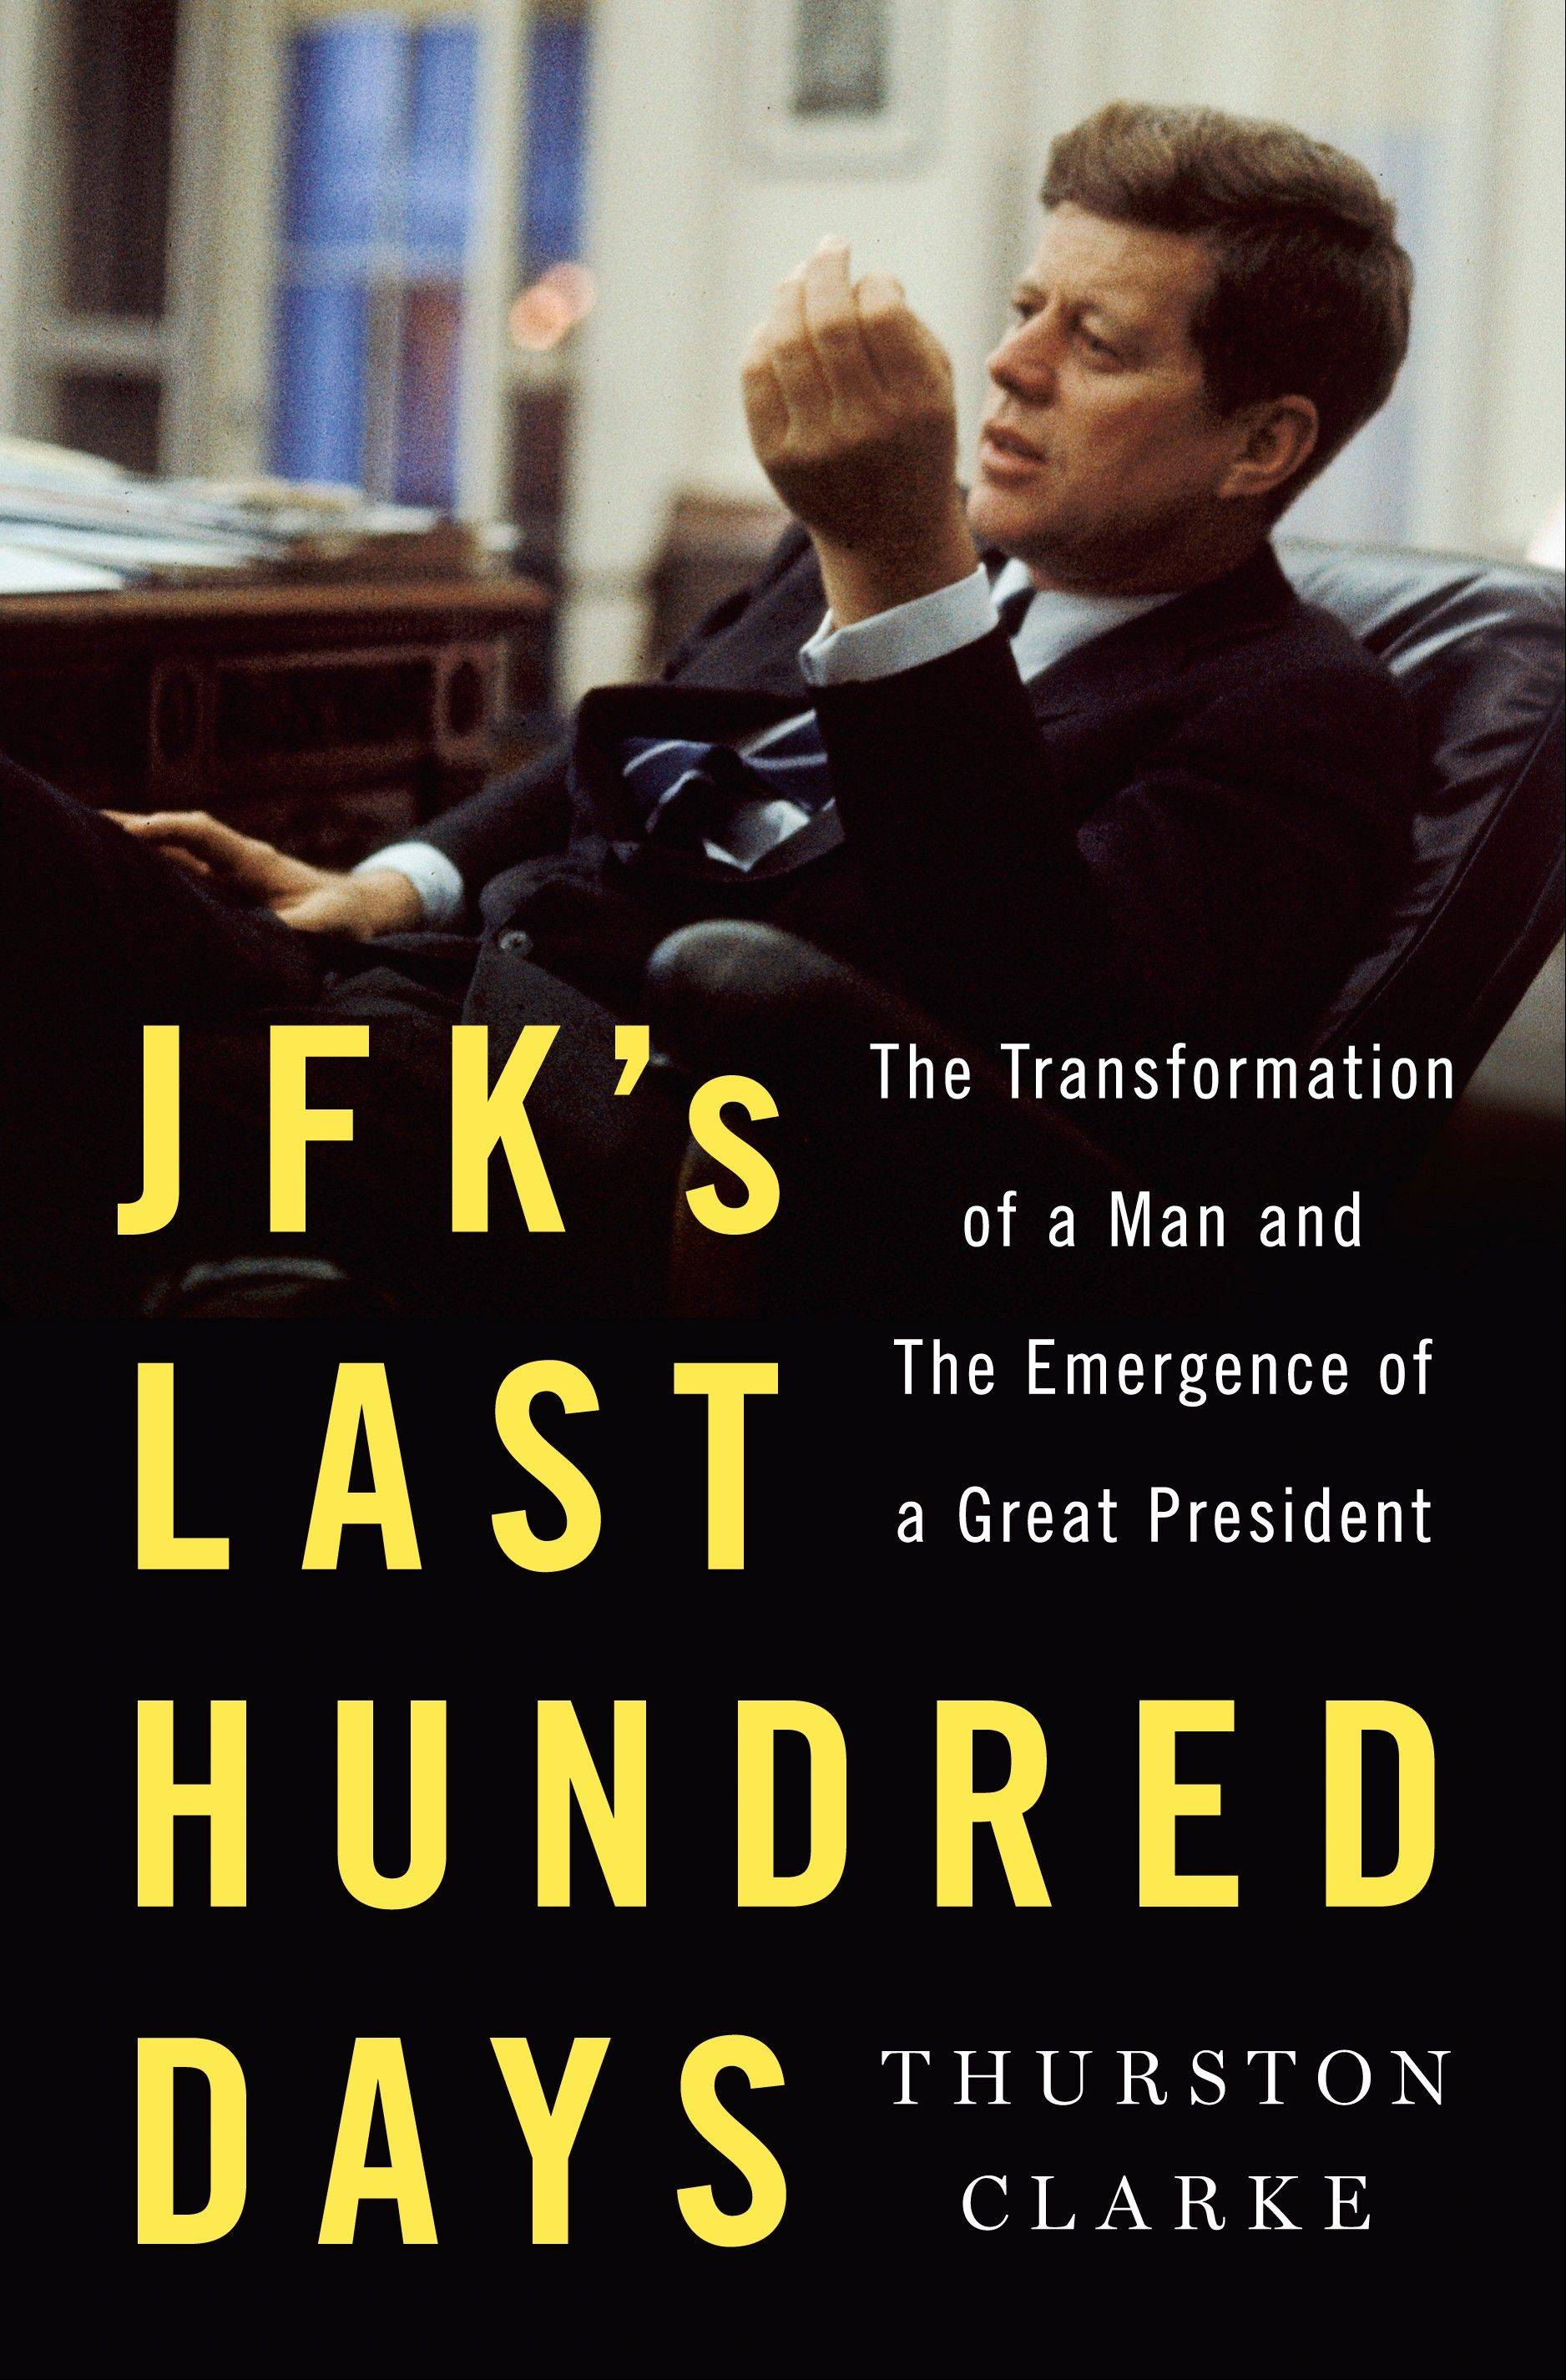 """JFK's Last Hundred Days: The Transformation of a Man and the Emergence of a Great President"" by Thurston Clarke"